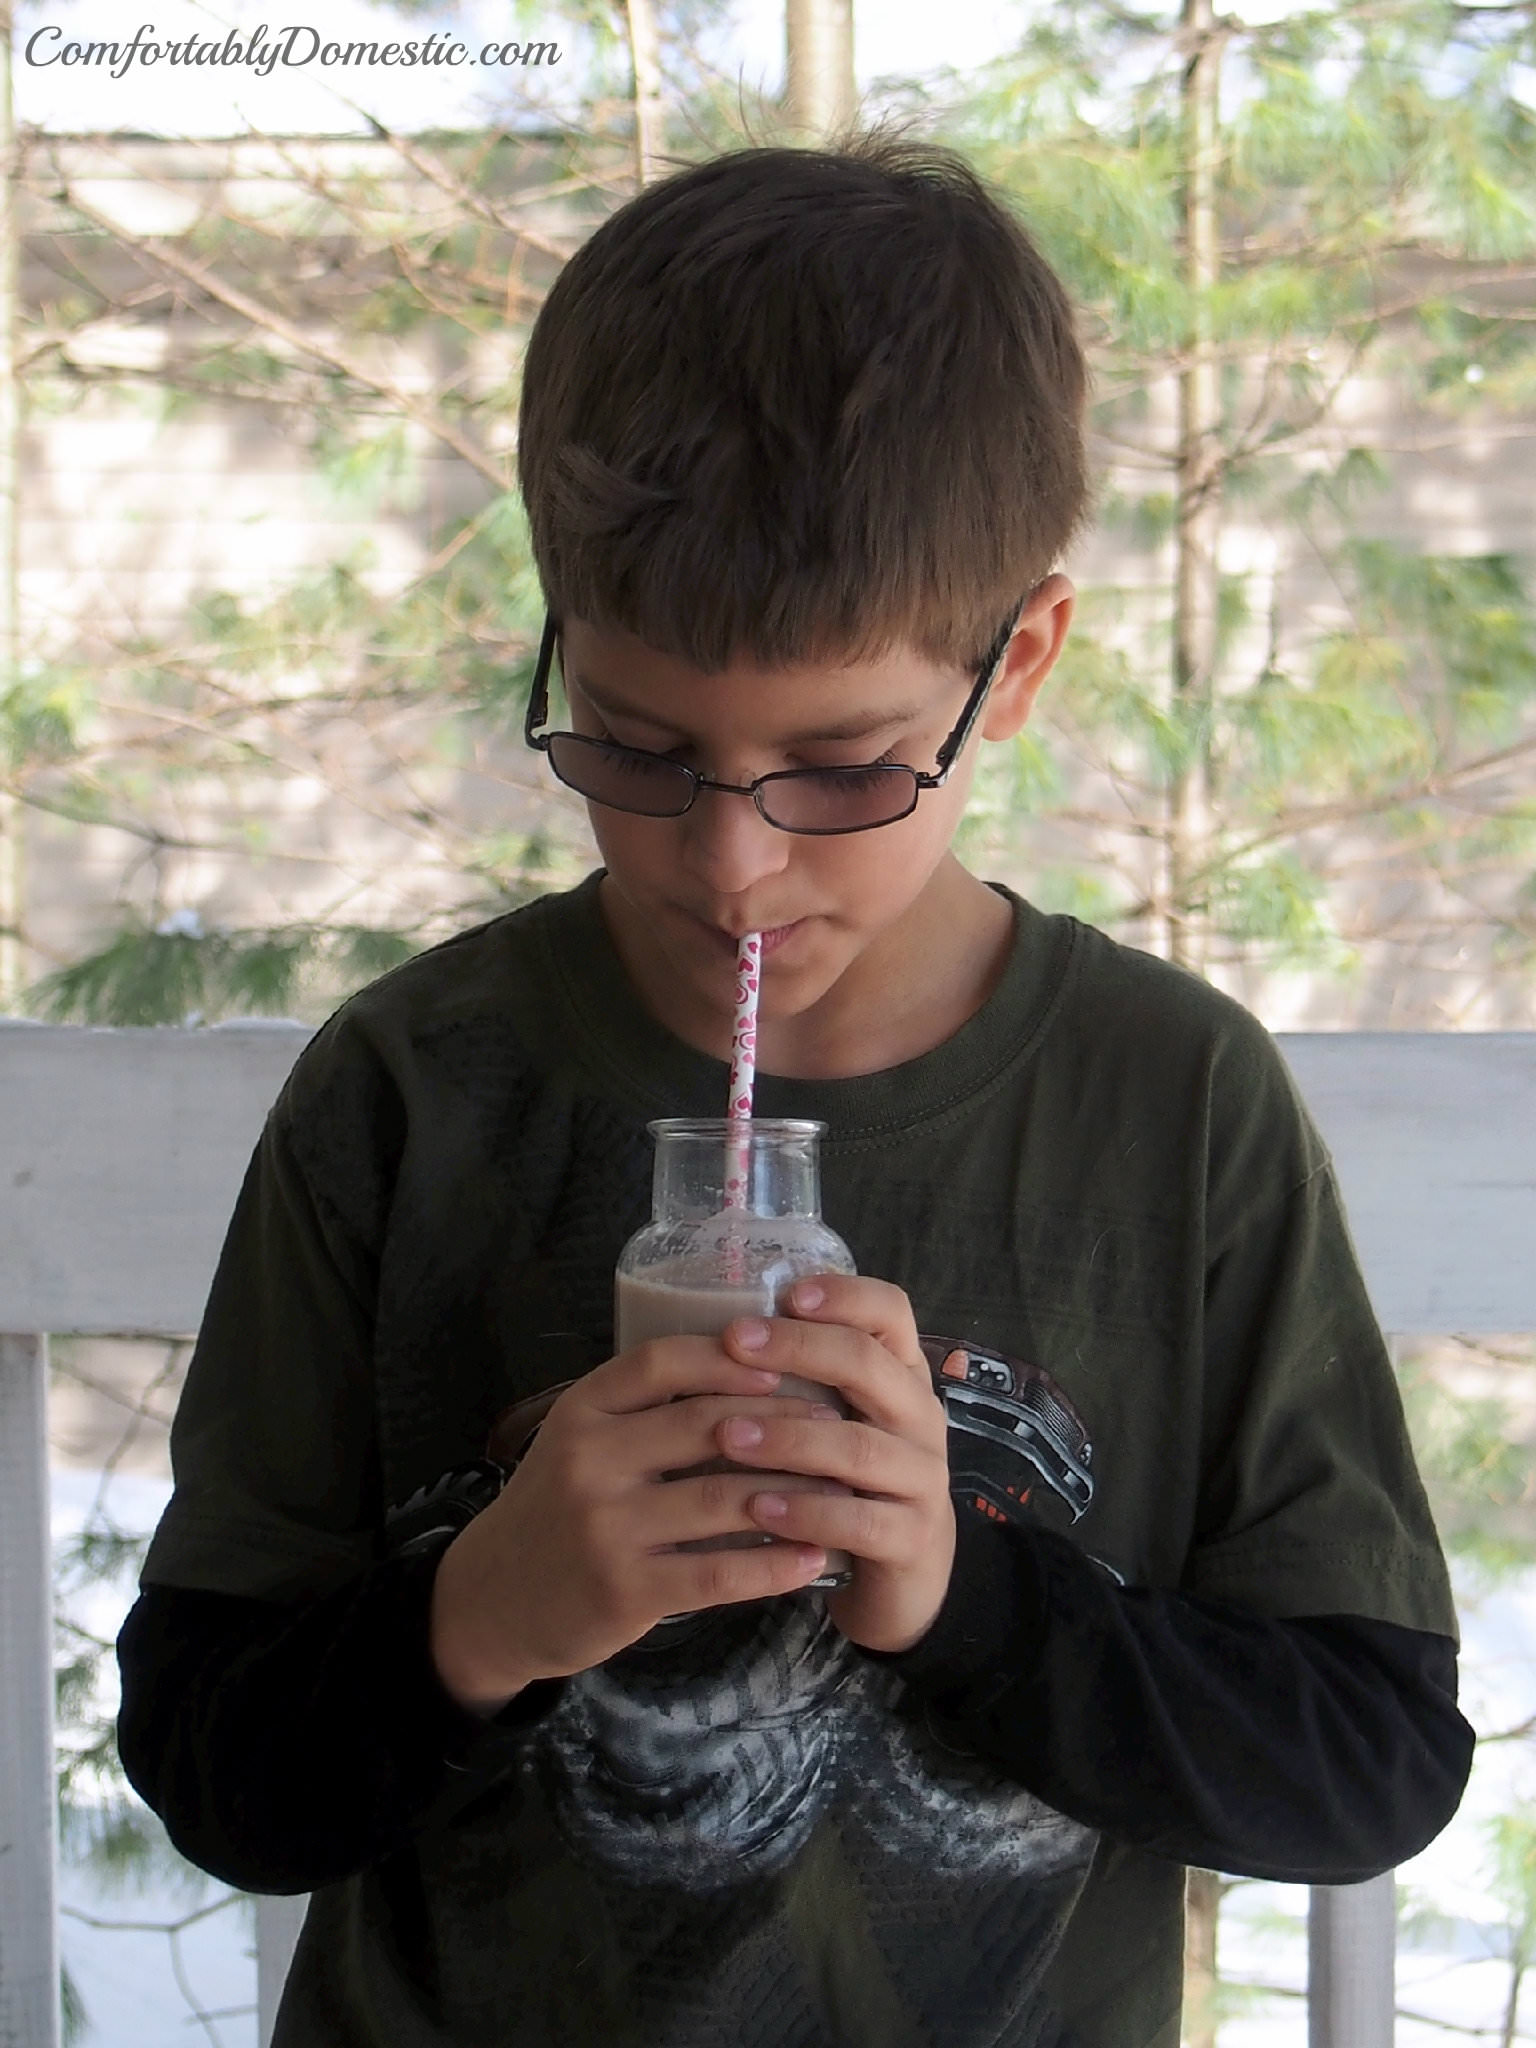 boy drinking chocolate milk made with homemade chocolate syrup.